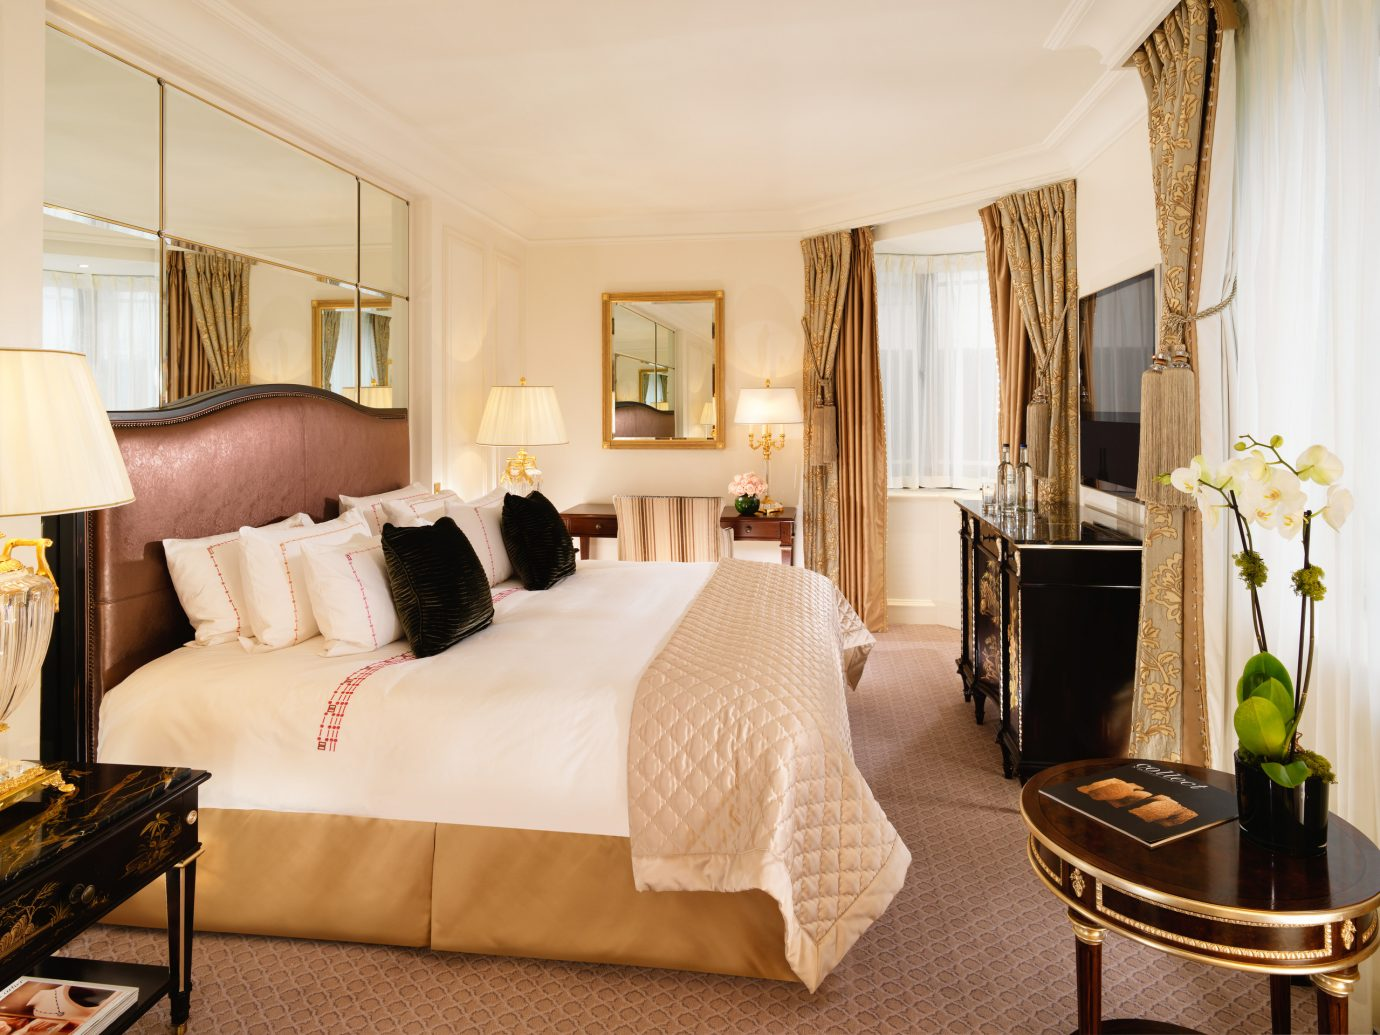 Bedroom at The Dorchester